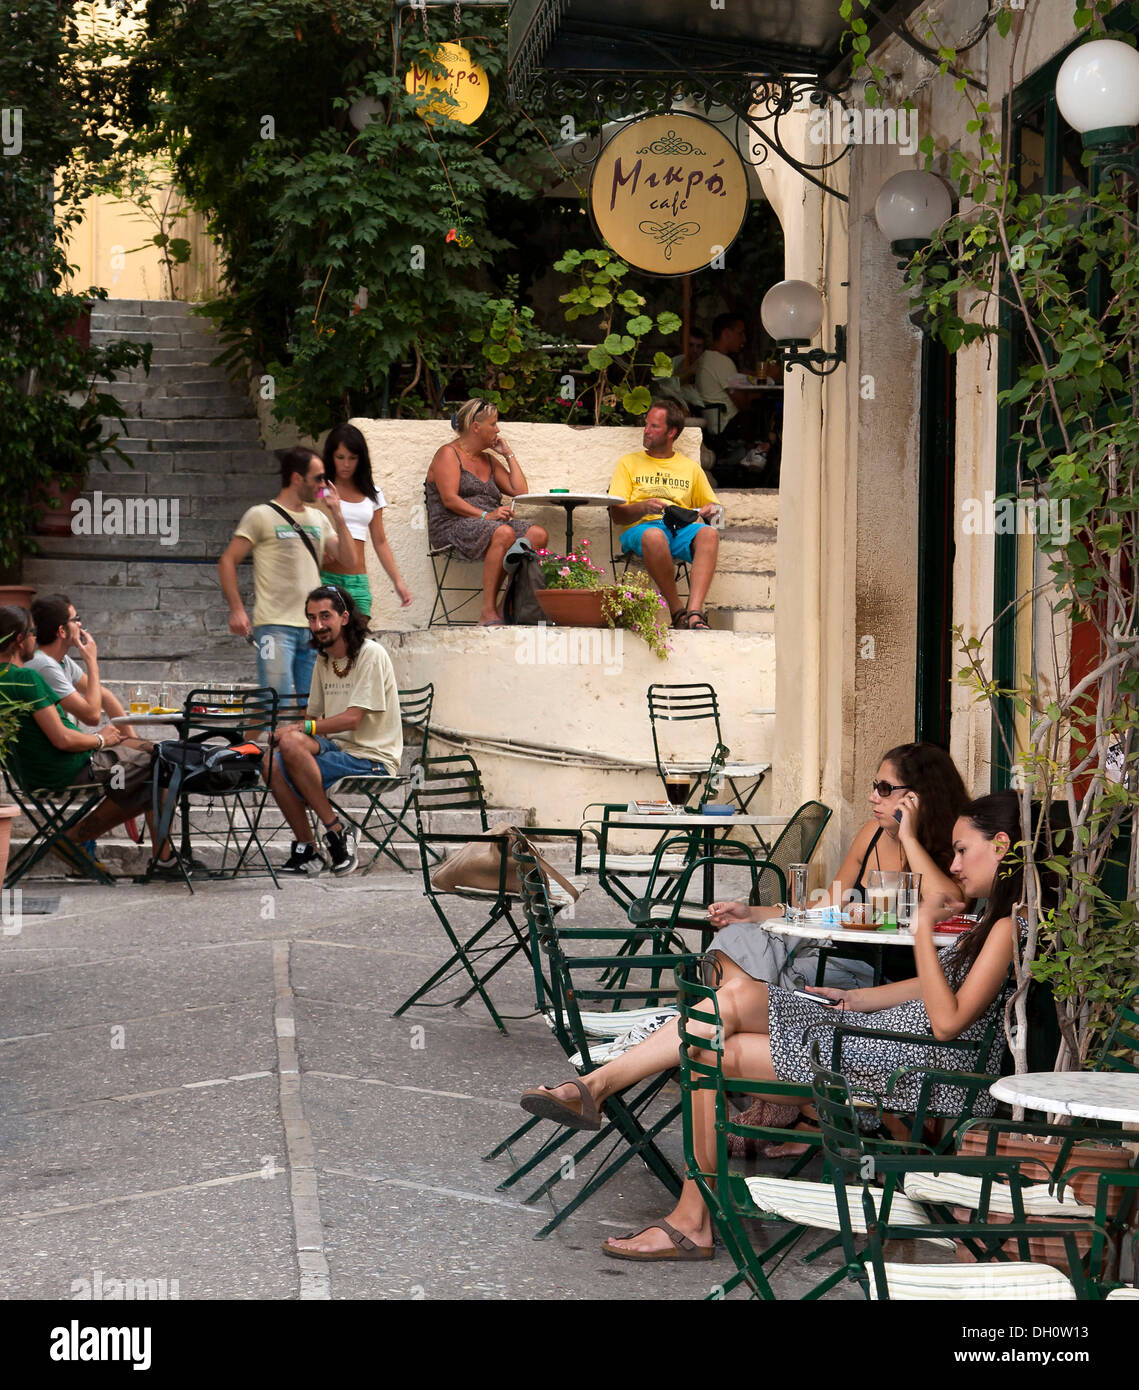 Cafes in the historic town centre of Corfu, also known as Kerkira or Kerkyra, north east Corfu, Corfu Island, Ionian Islands - Stock Image